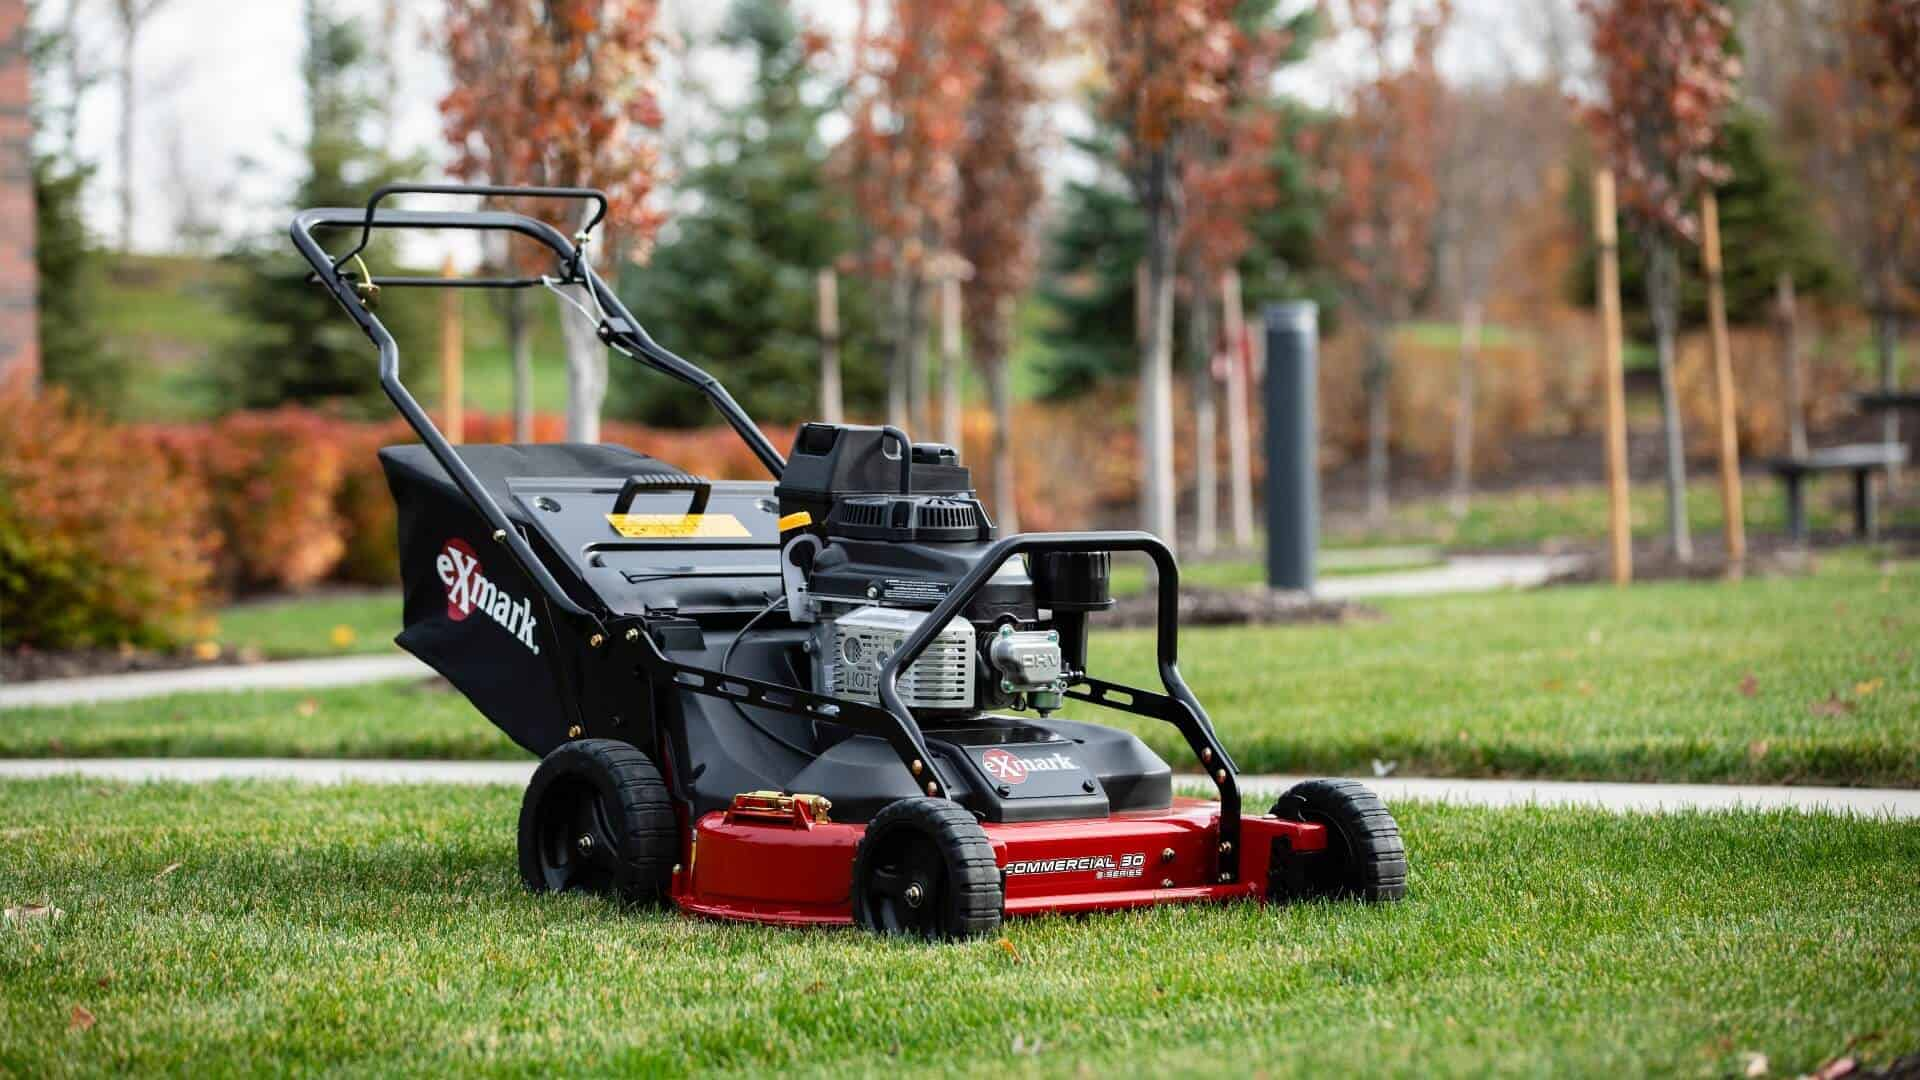 Exmark mower at the end of the season, ready for fall mower maintenance and winterizing